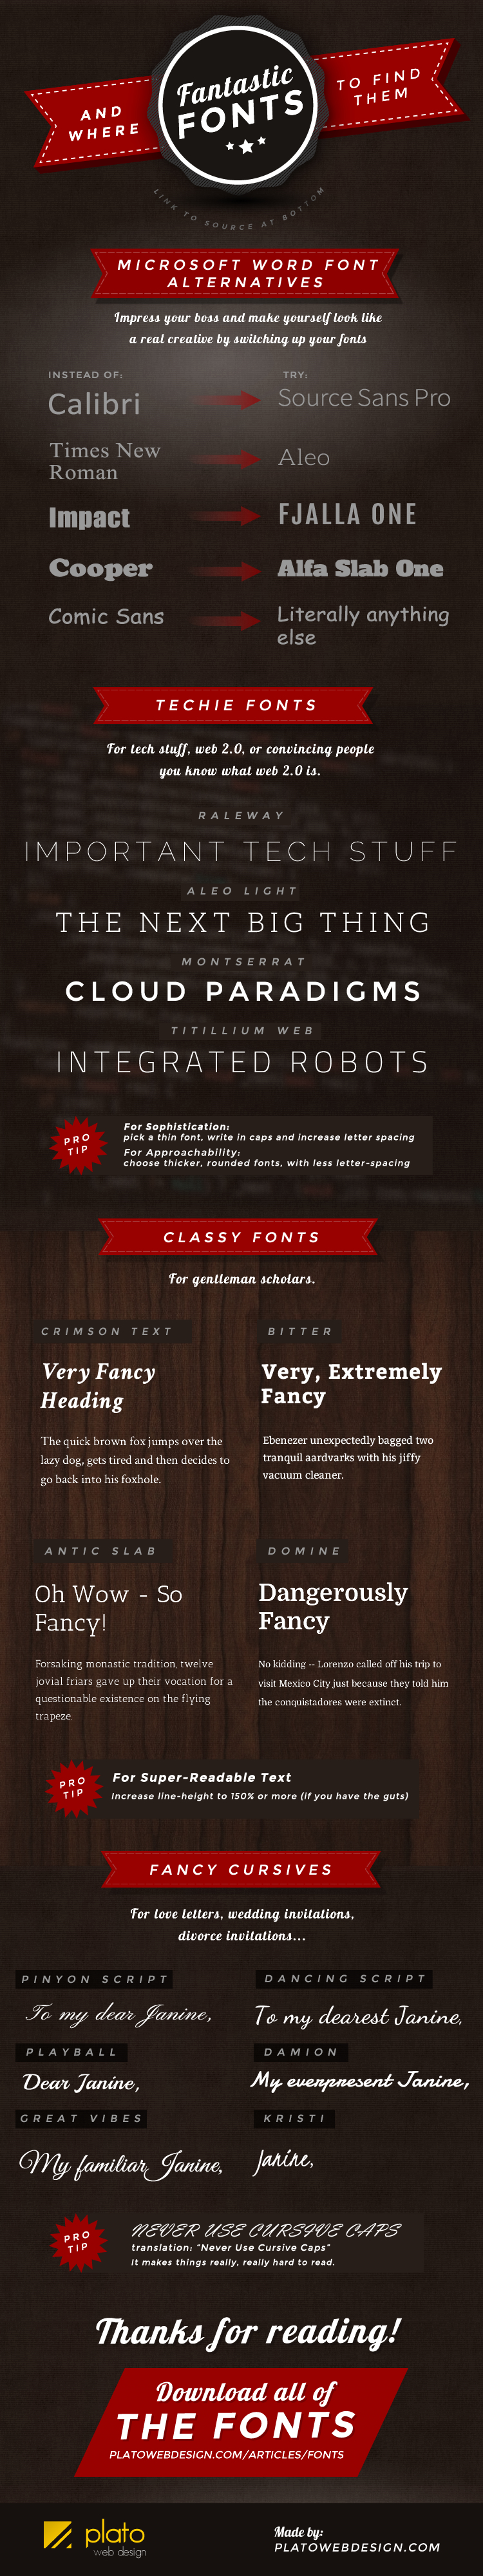 having trouble reading the infographic click on the image to make it larger - Best Fonts For Resume